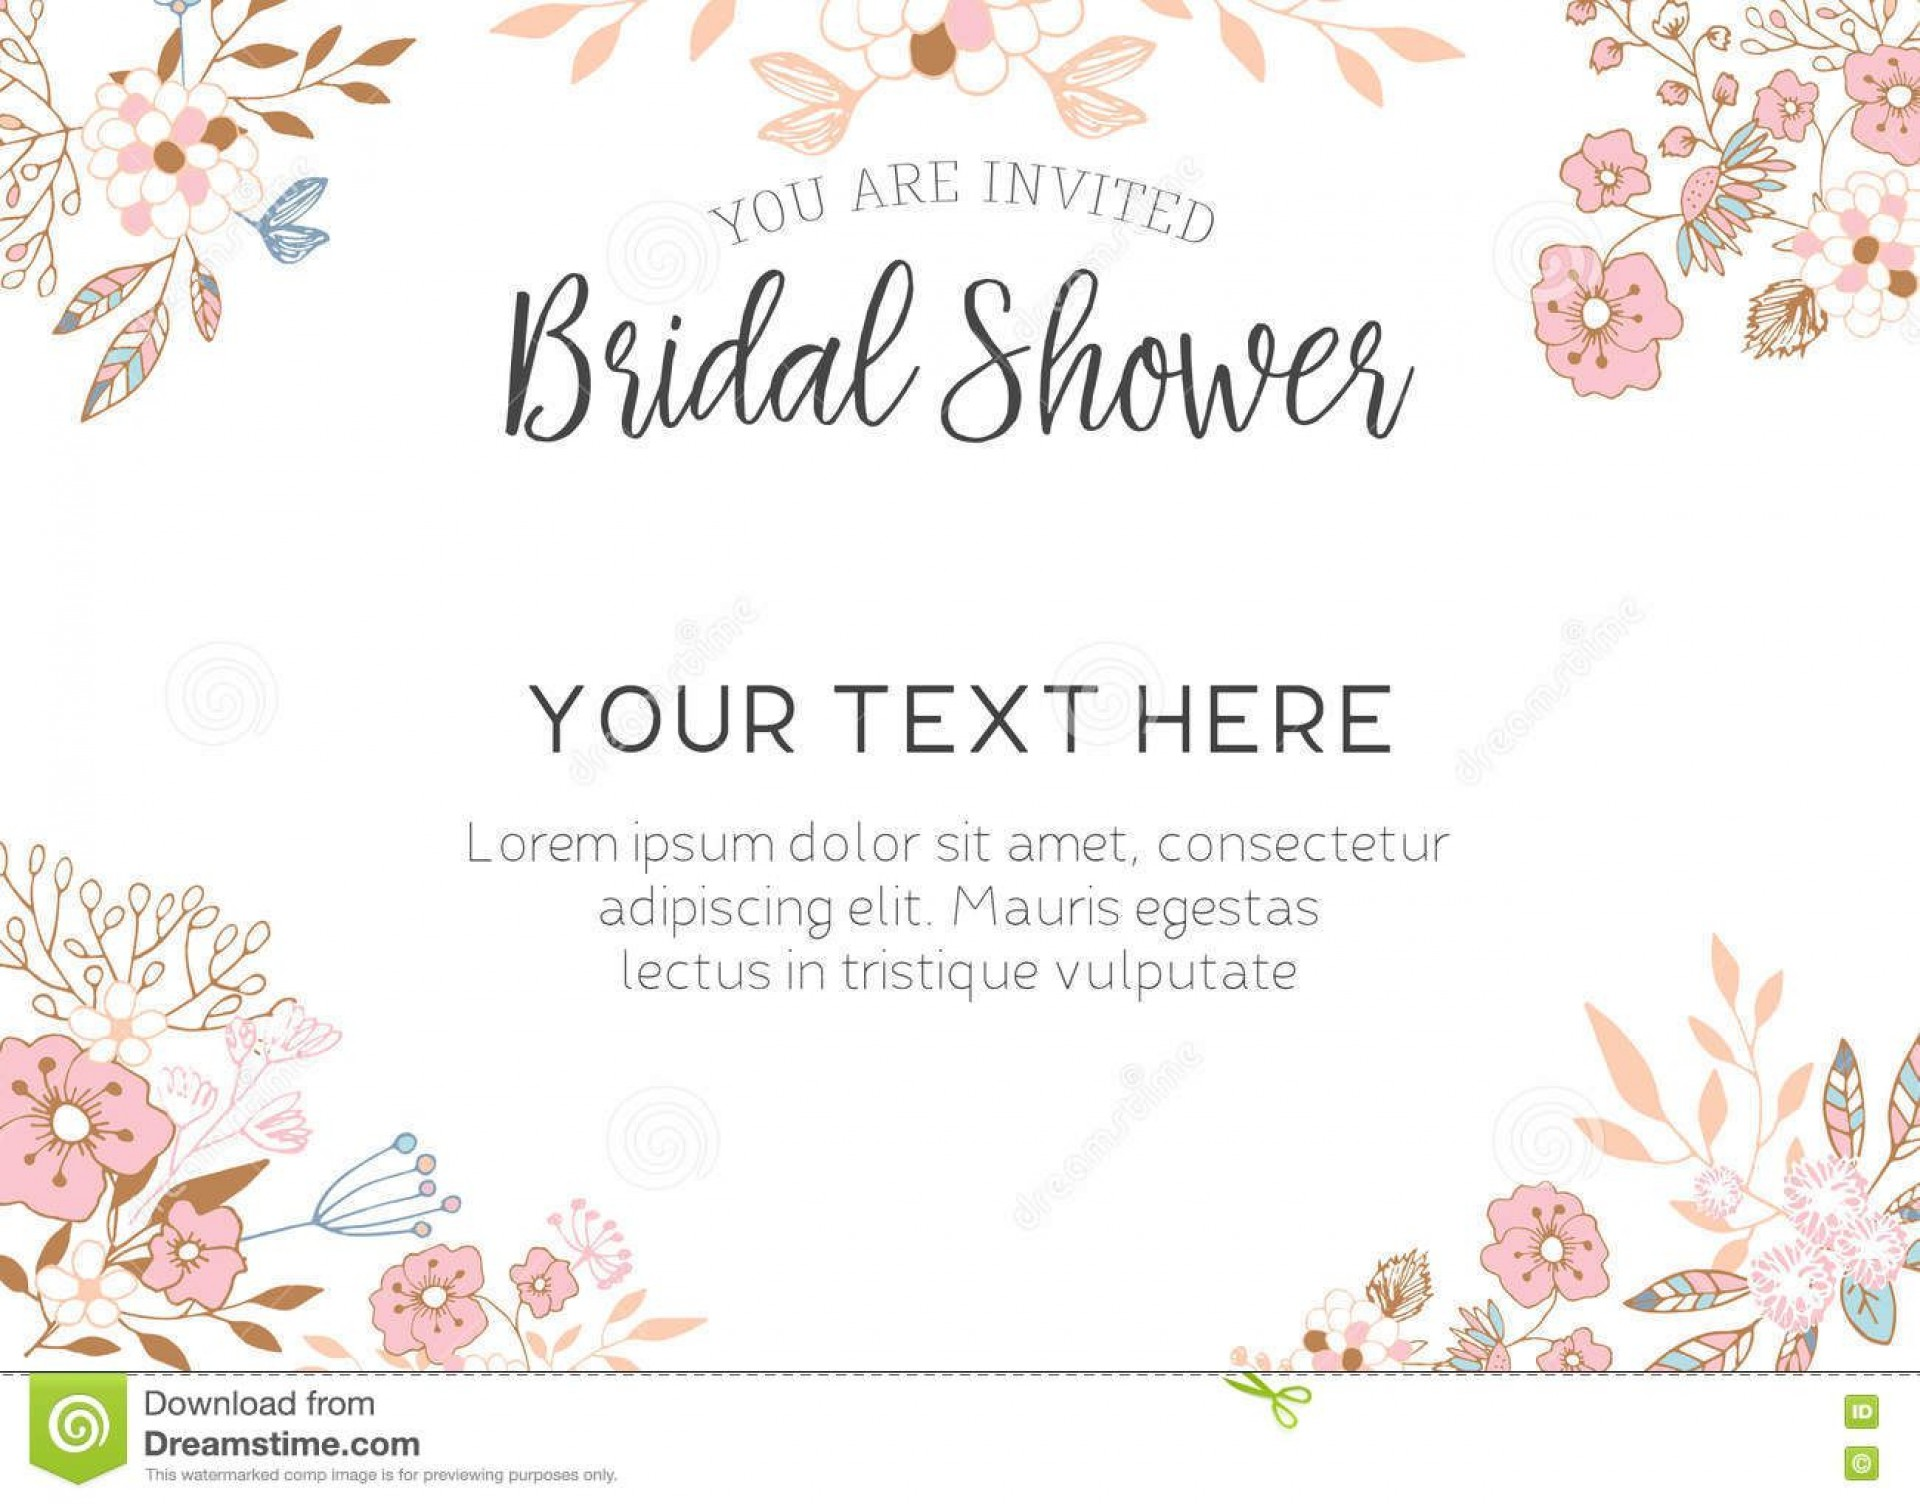 006 Remarkable Free Bridal Shower Invite Template Highest Clarity  Templates Invitation To Print Online Wedding For Microsoft Word1920